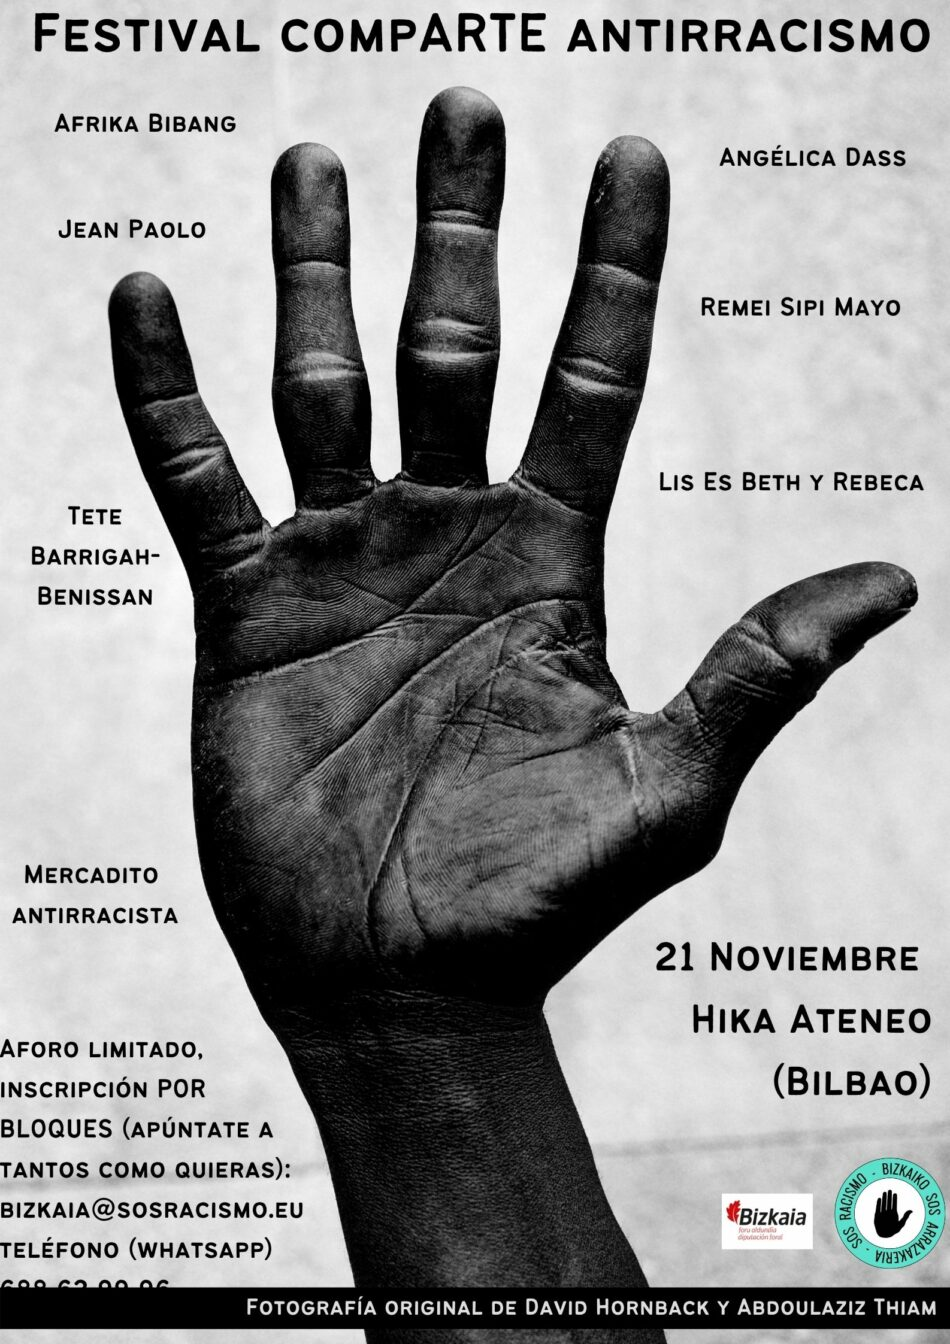 Festival compARTE antirracismo